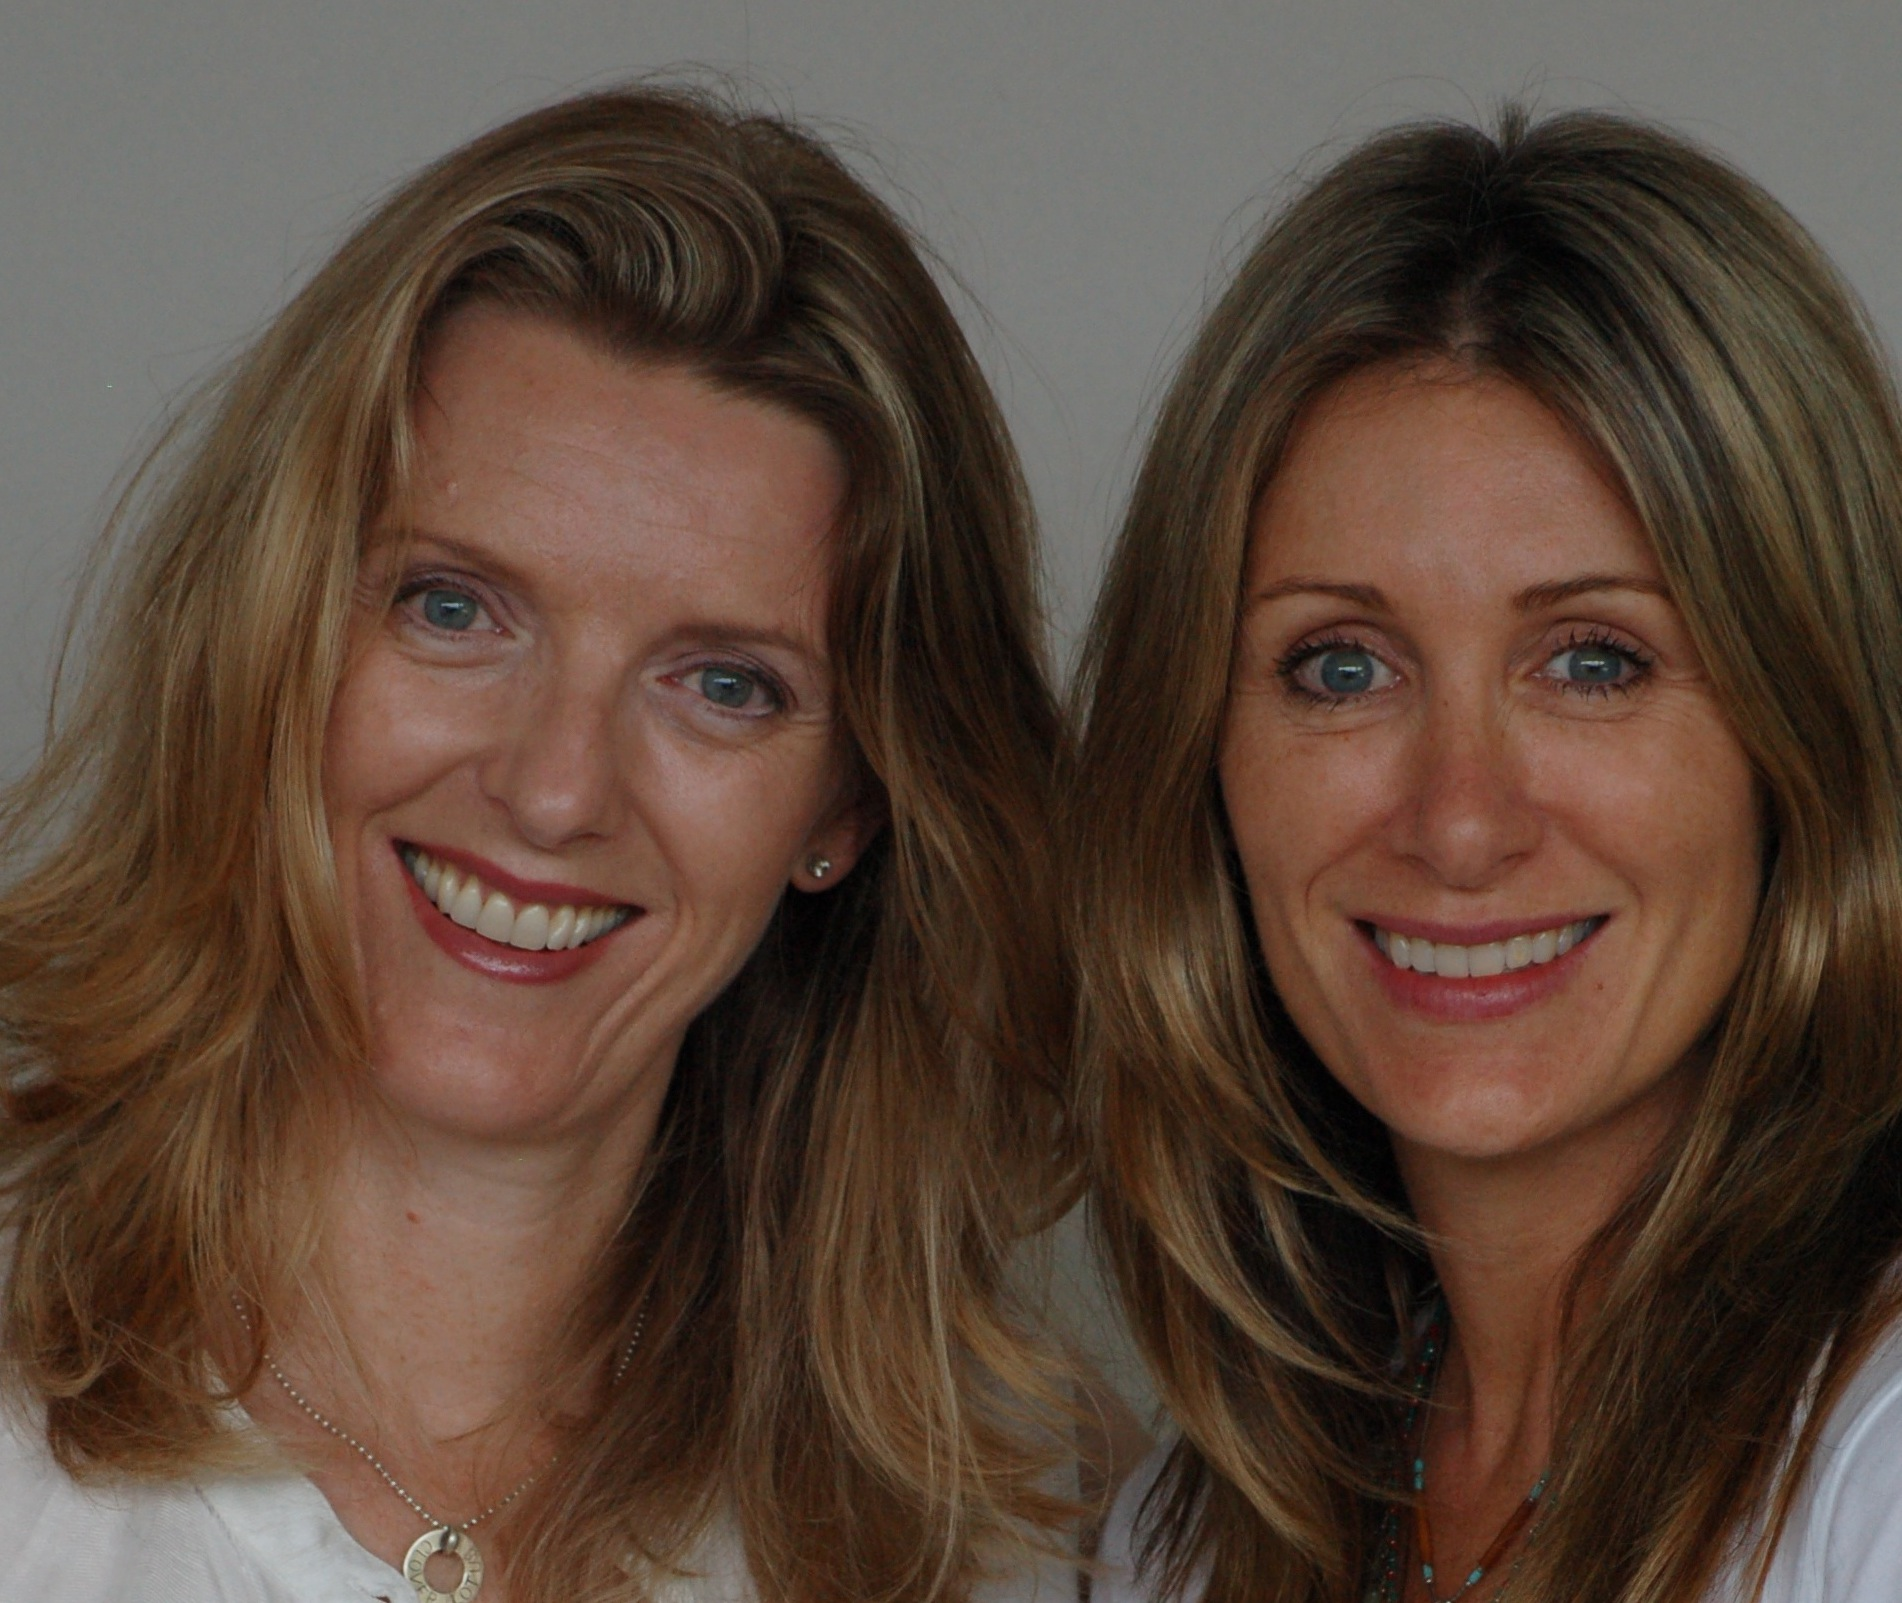 Melissa Dixon and Lainie Bracher, co-founders of Meat Free Week